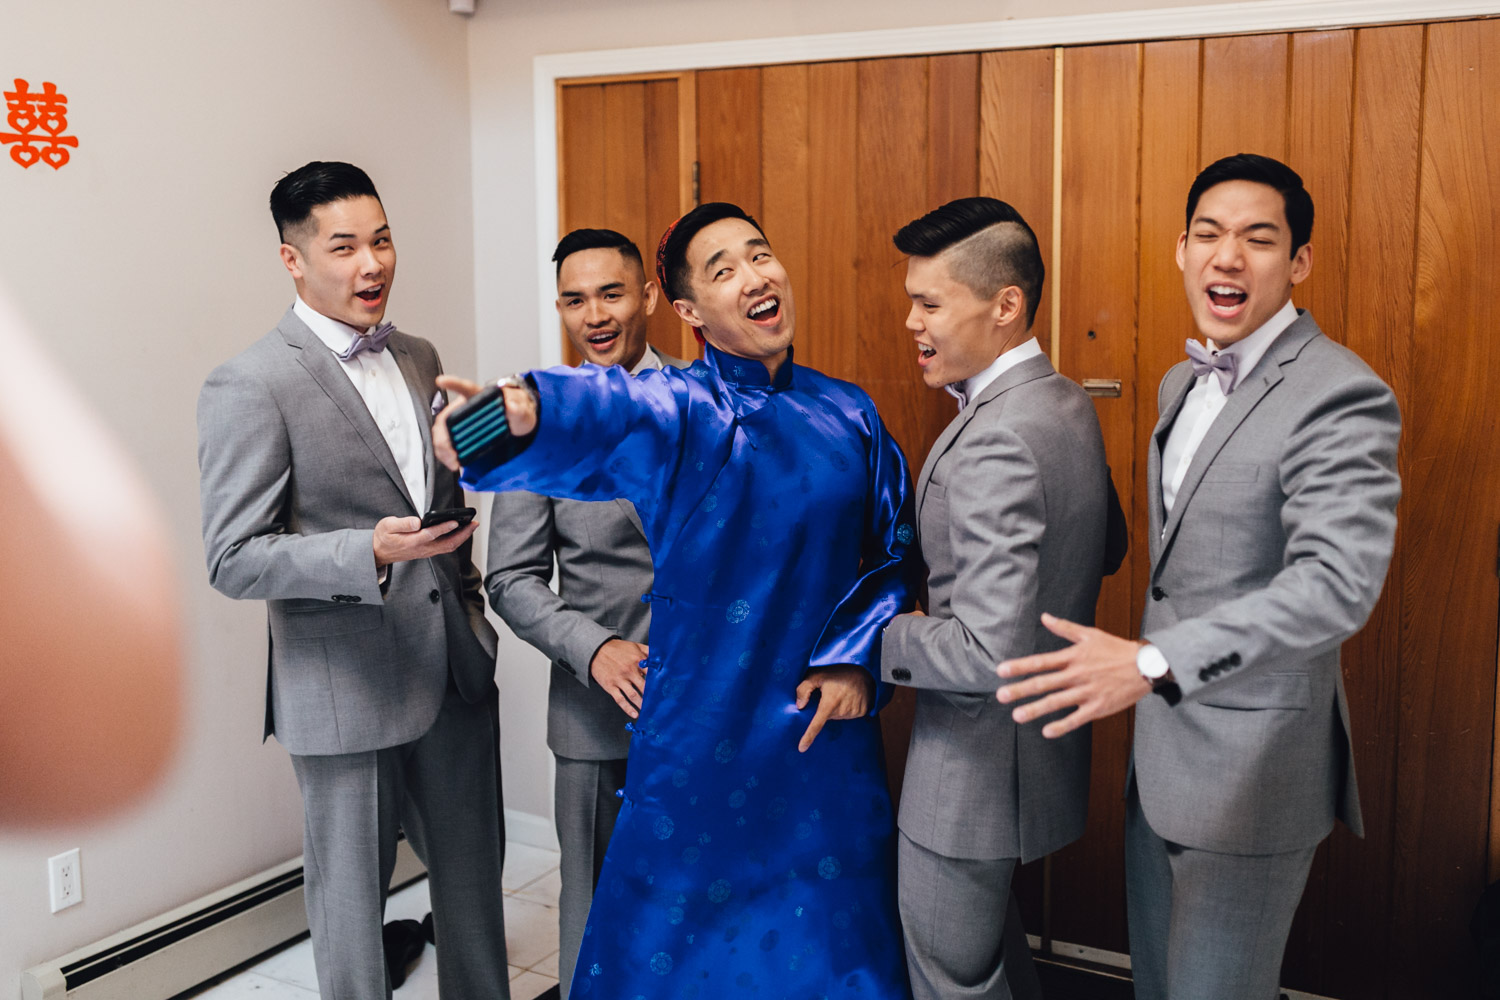 chinese door games tradition wedding photography in vancouver bc